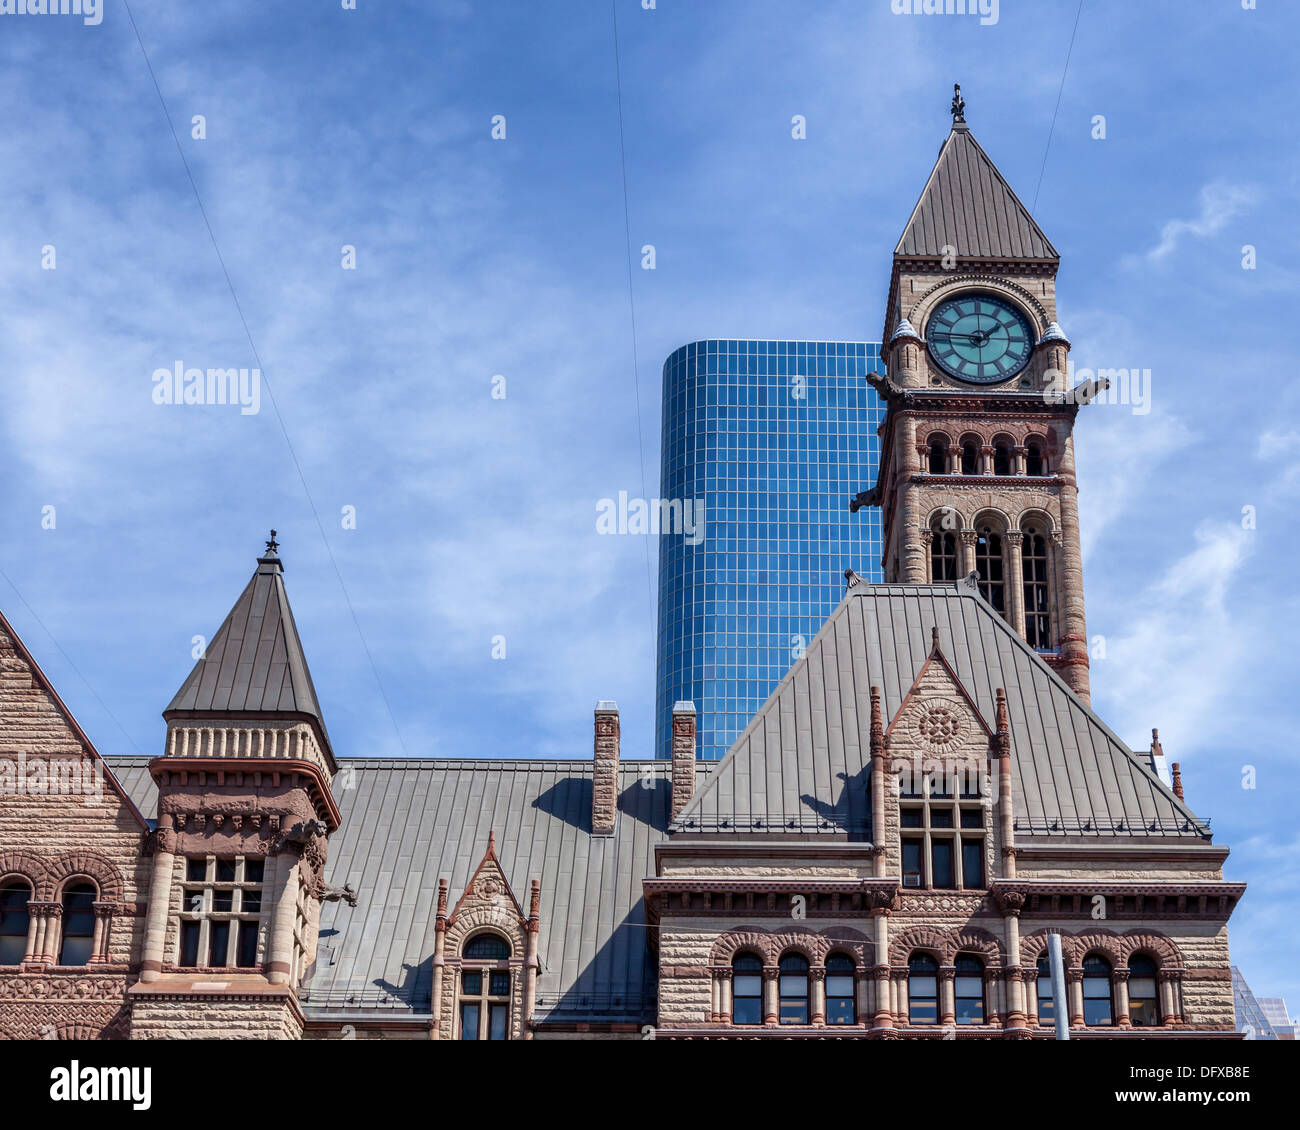 Romanesque revival style, sandstone old City Hall with clock tower and modern glass Skyscraper against a blue sky, Toronto - Stock Image